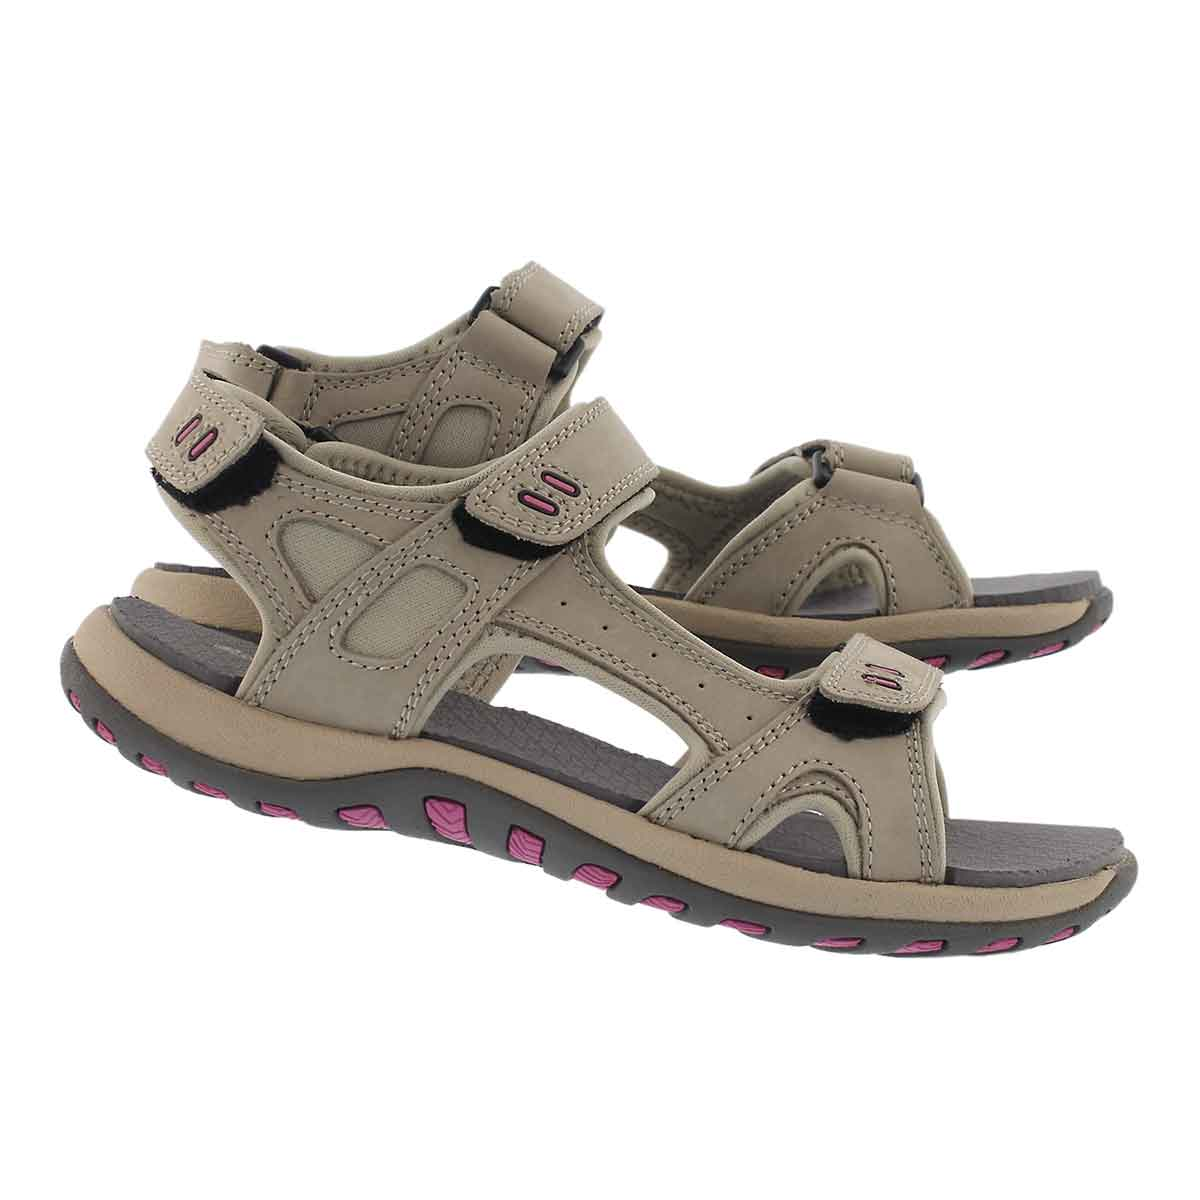 Lds Courtney stone 3 strap sport sandal